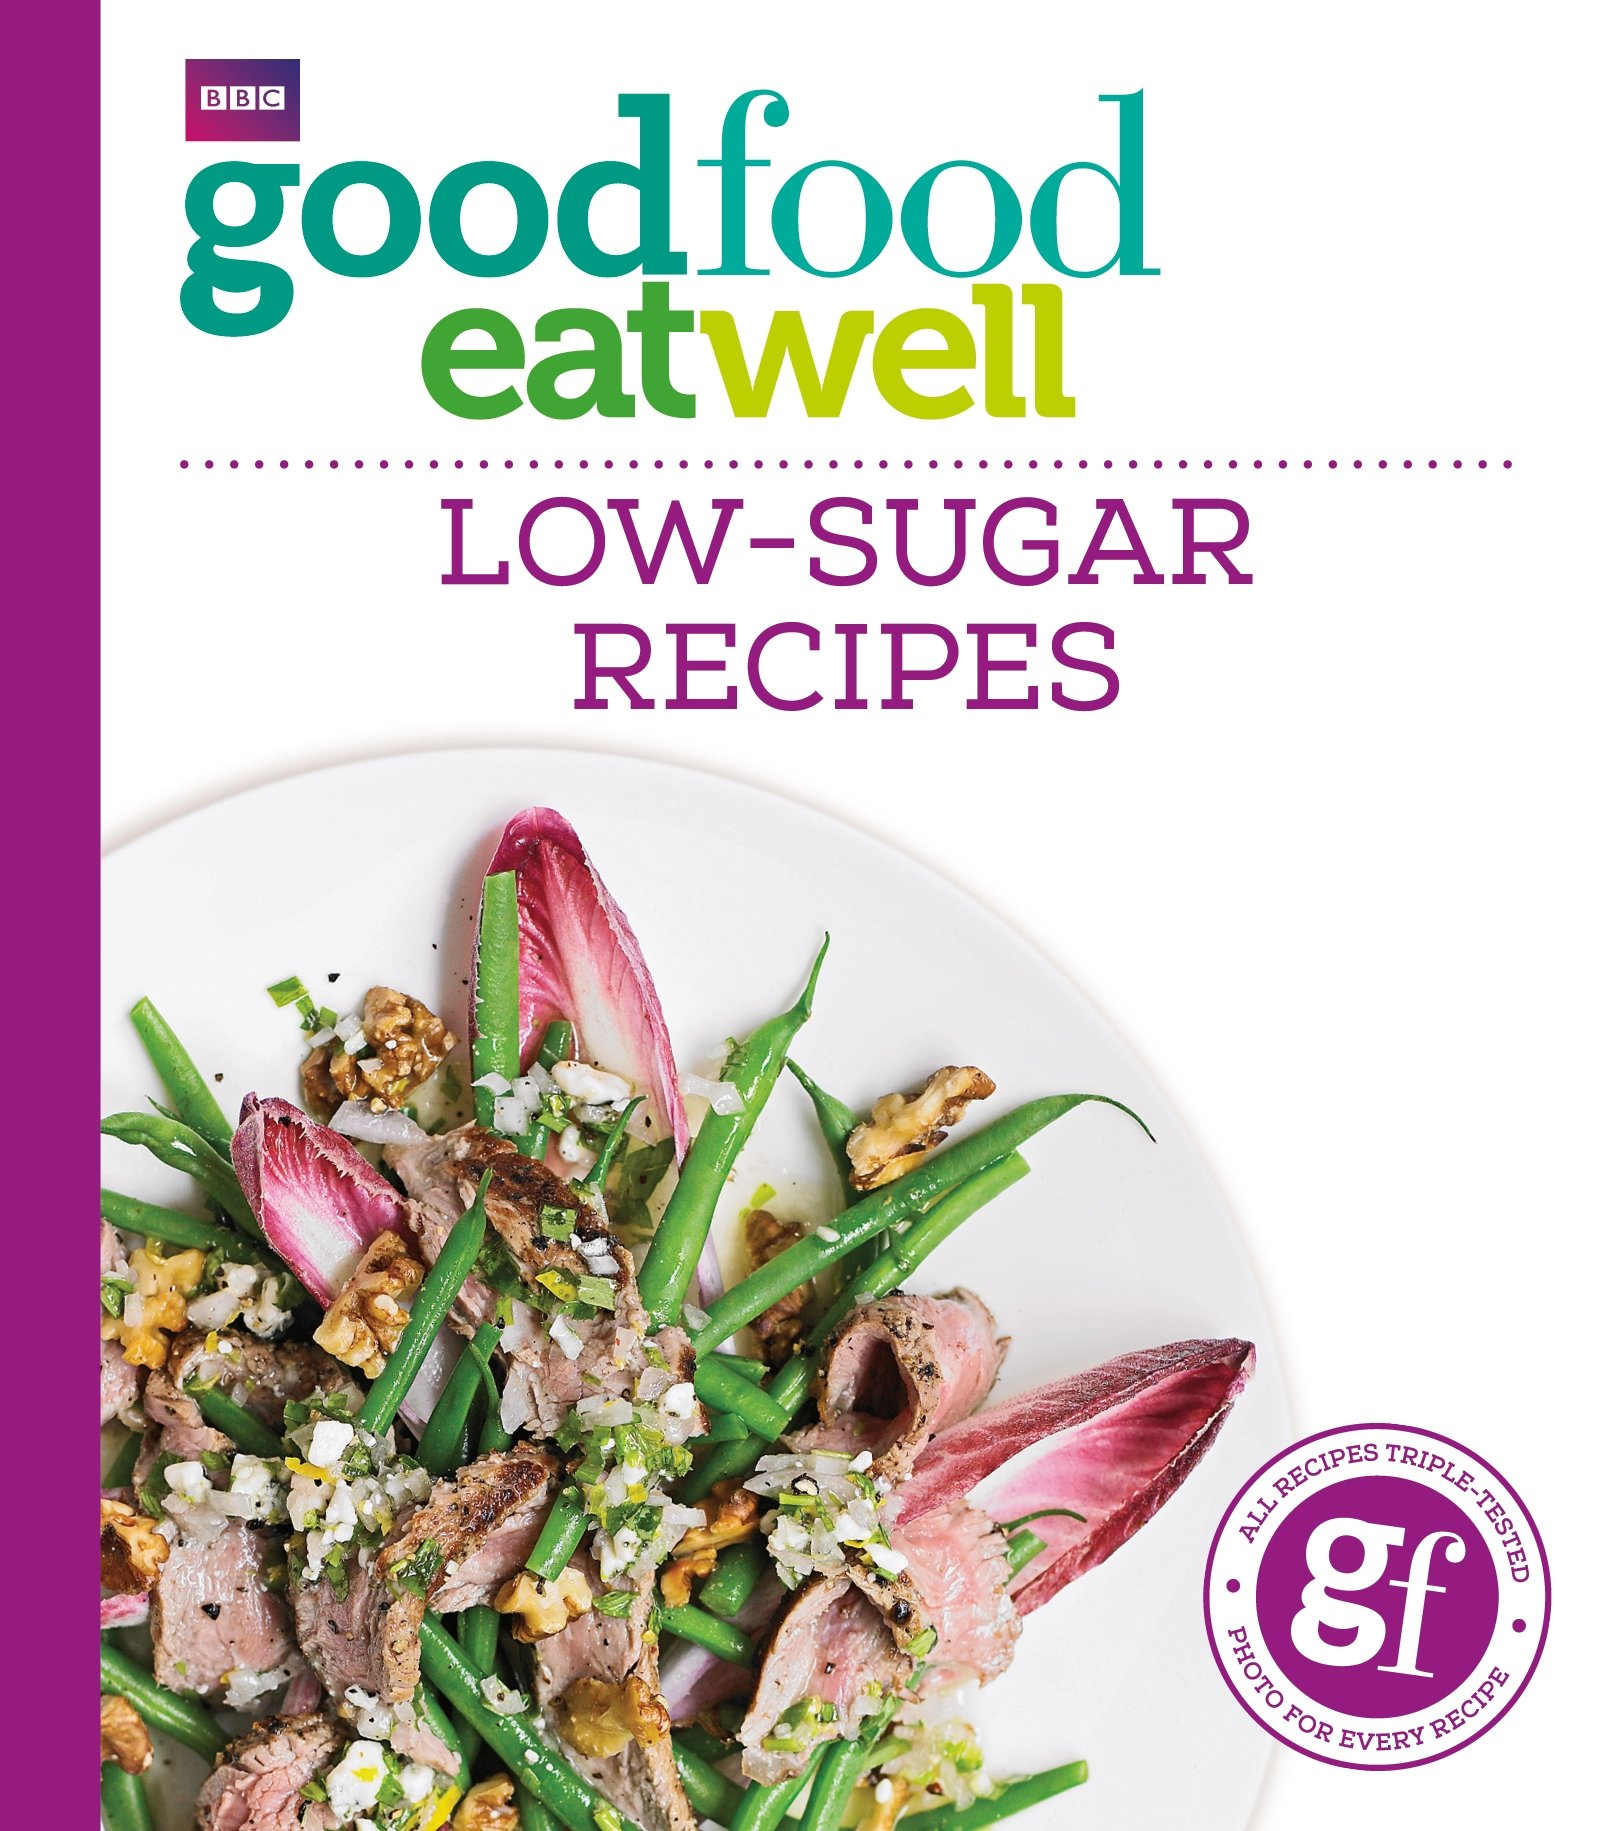 Good food low carb cooking everyday goodfood amazon good food eat well low sugar recipes forumfinder Images